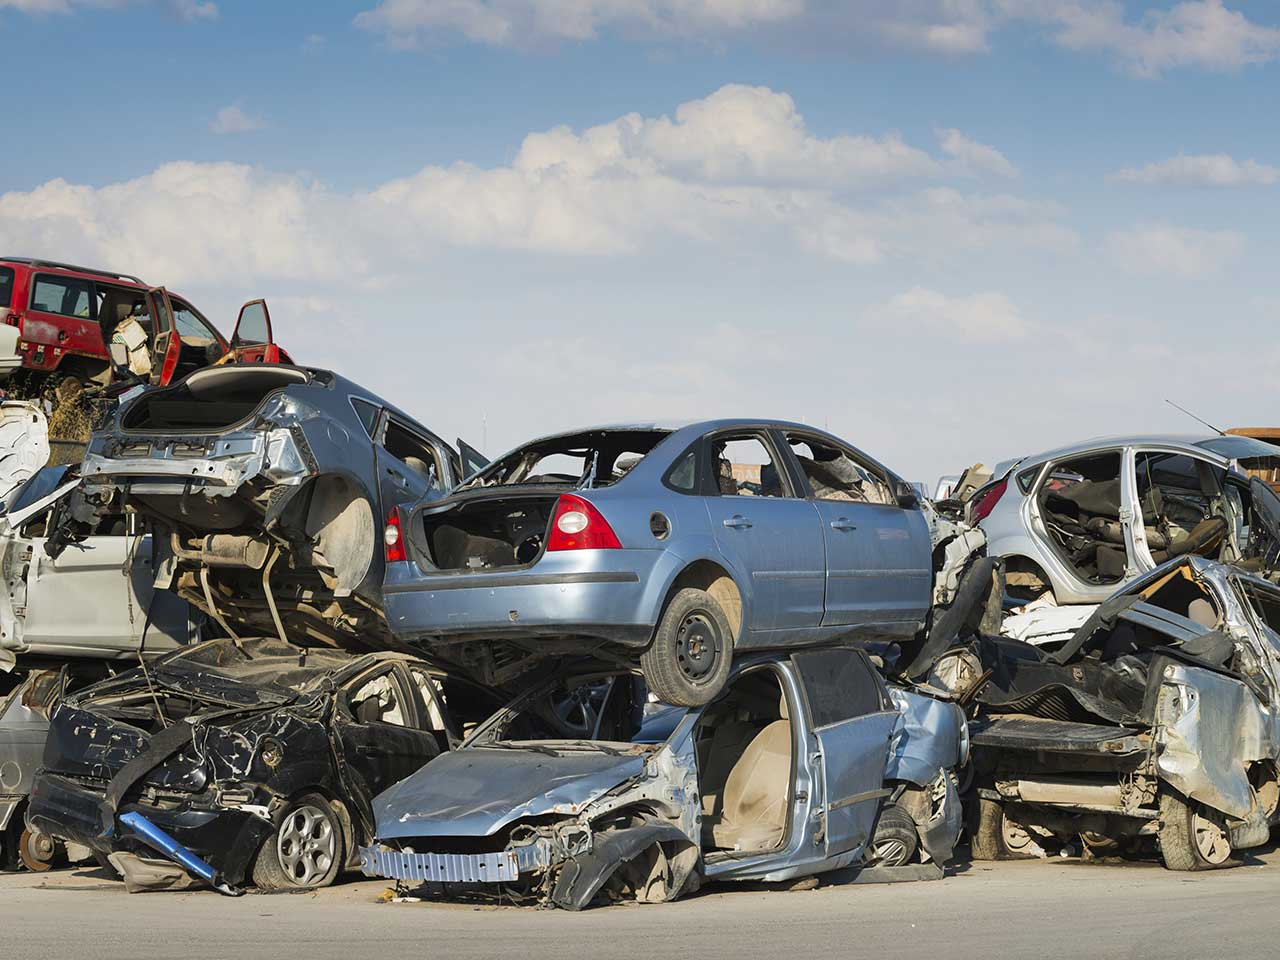 Scrapping my car: an image of scrapped cars to illustrate this guide of how to scrap a car